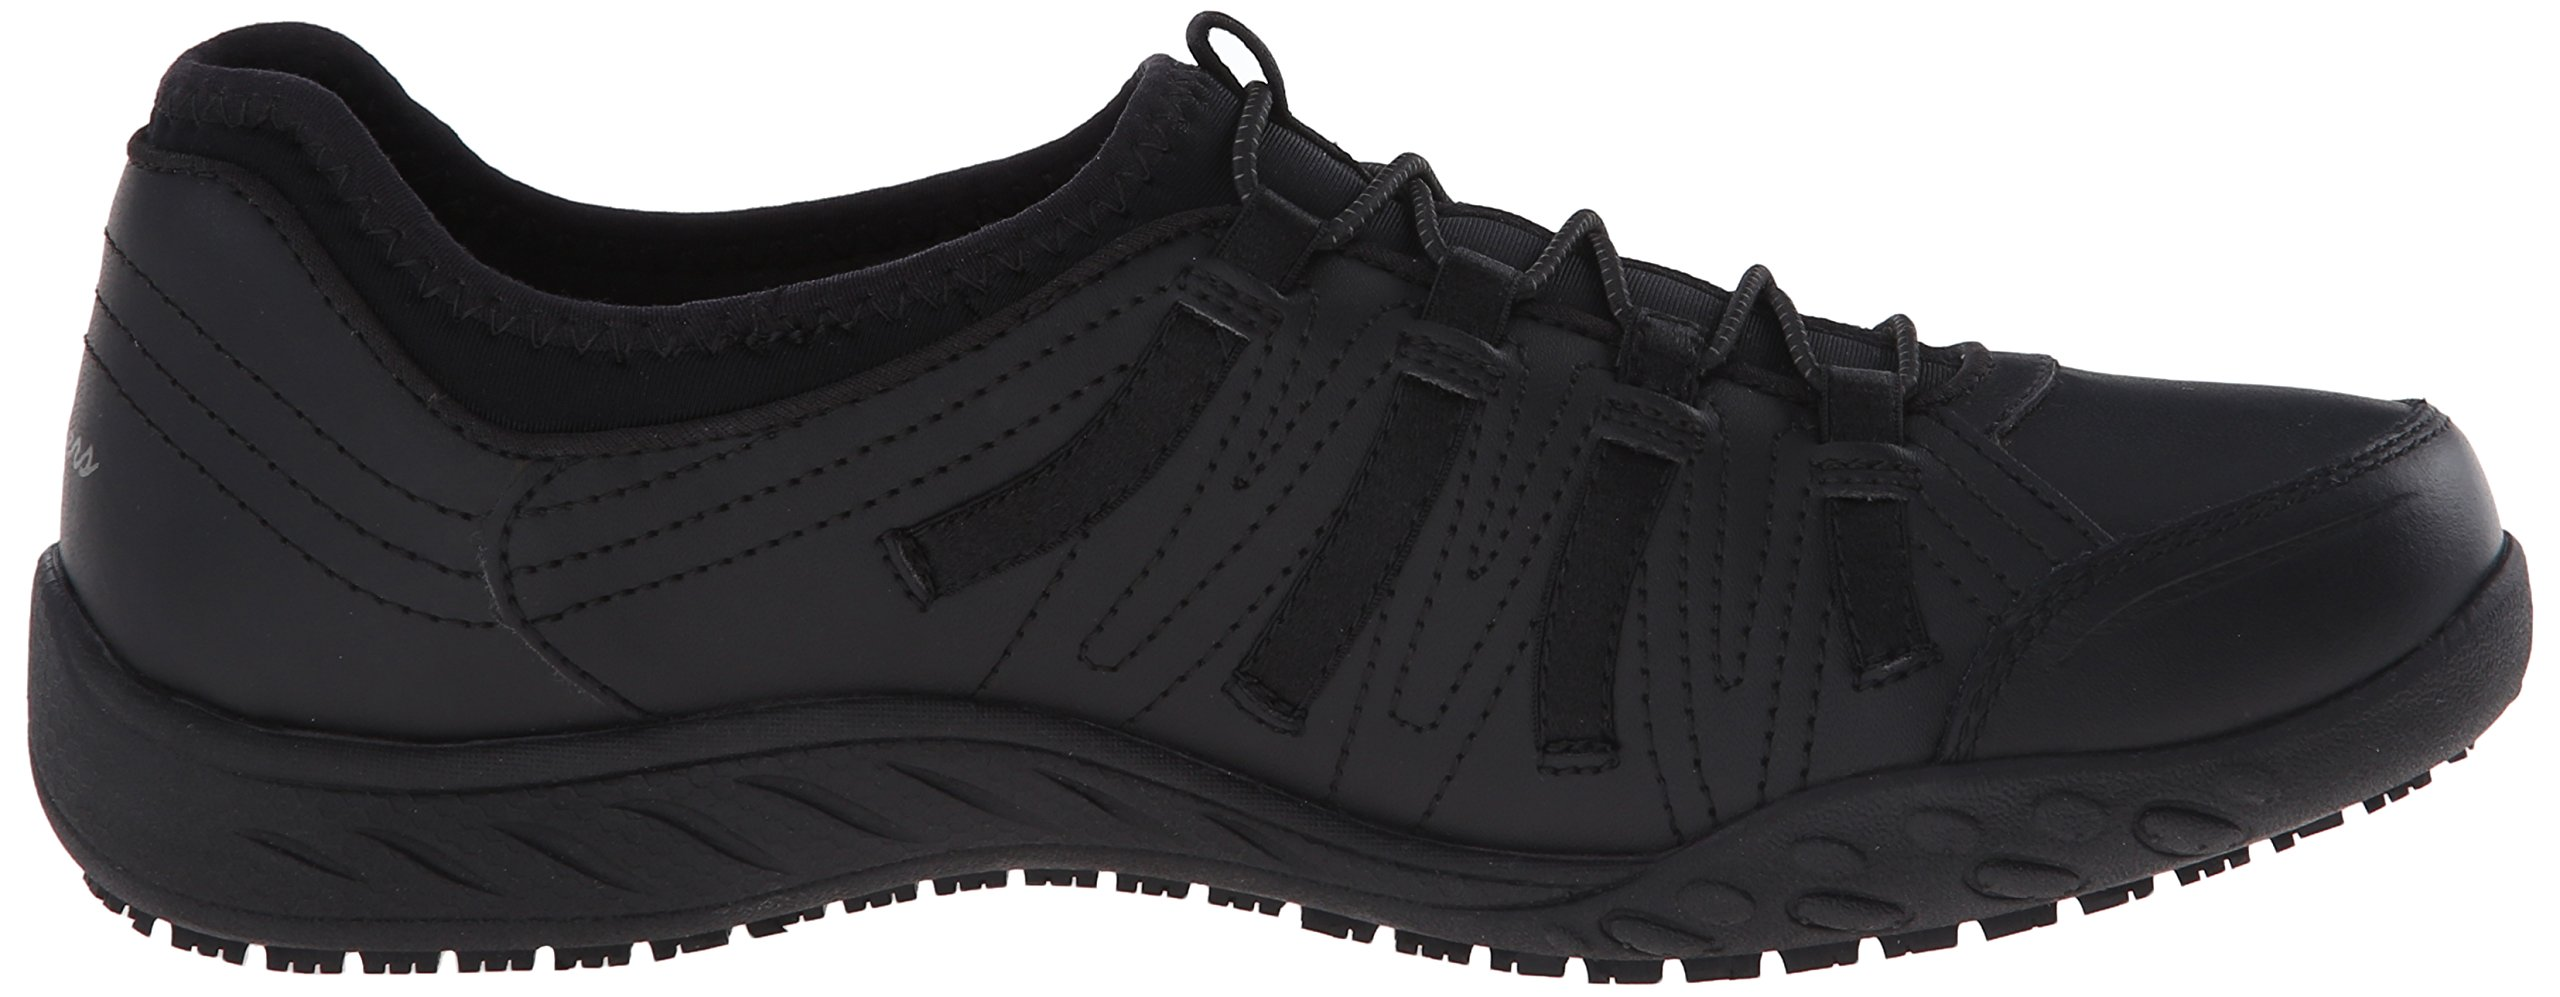 6be18d844282 Skechers for Work Women s Bungee Slip Resistant Lace-Up Sneaker ...